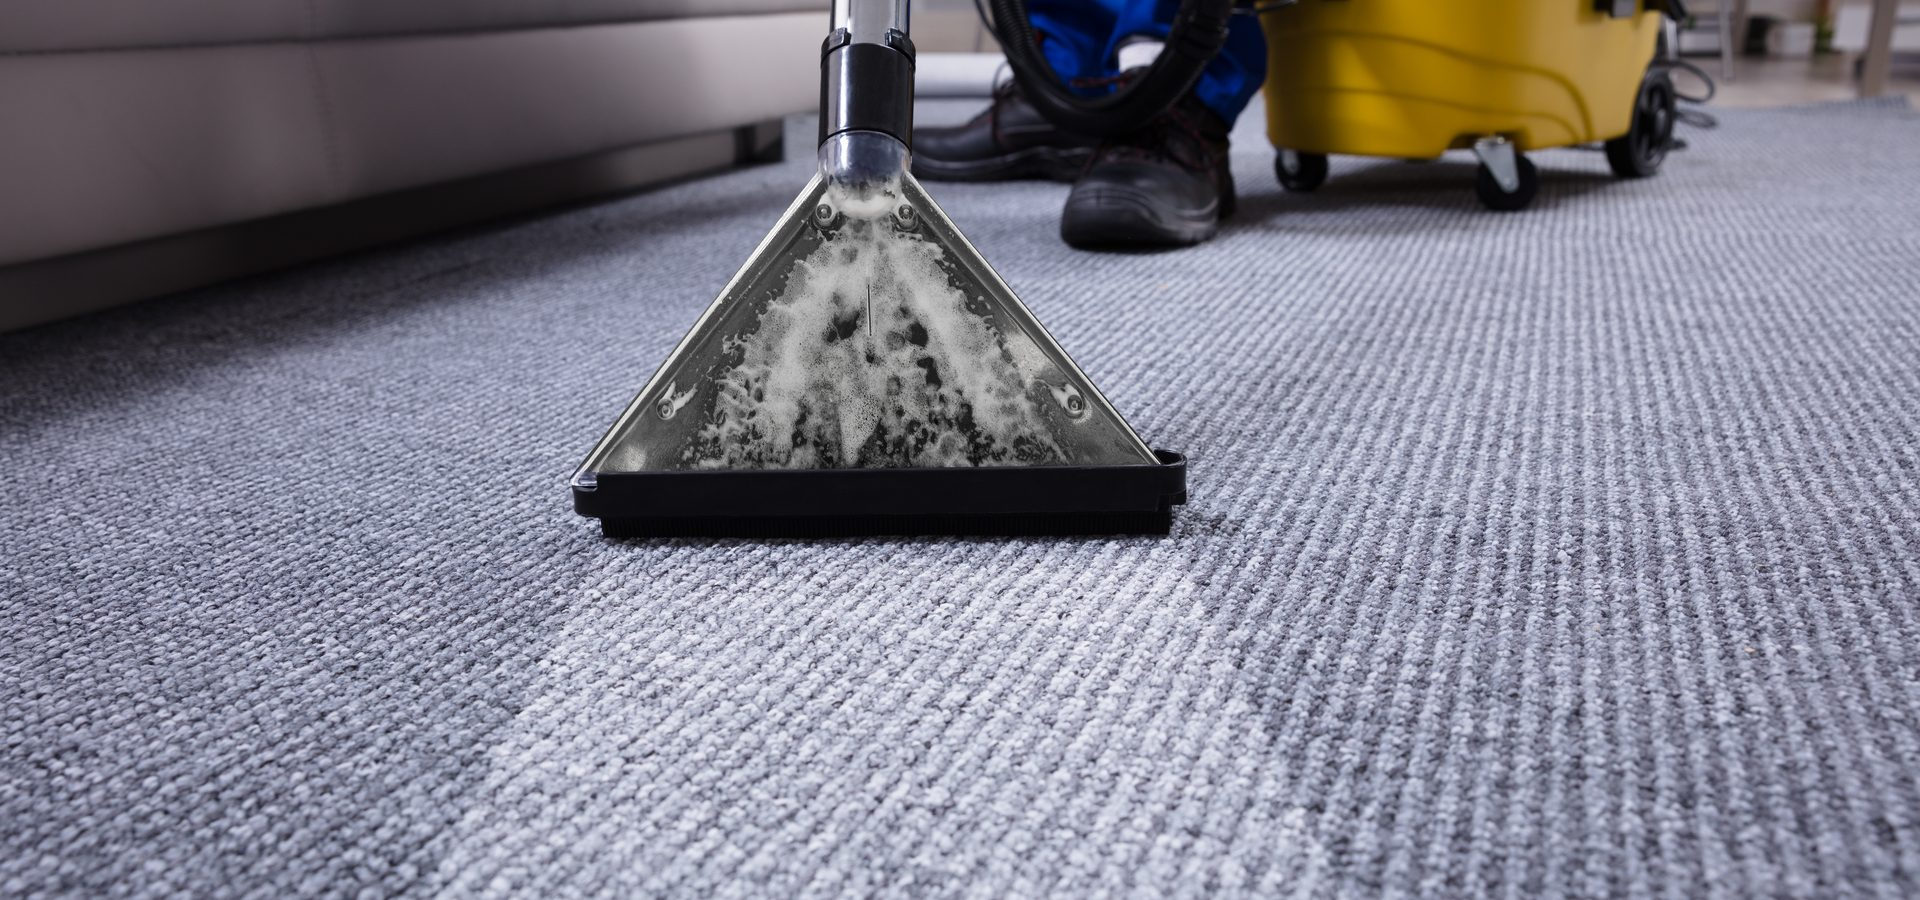 carpet cleaning machine being used to clean and office carpet